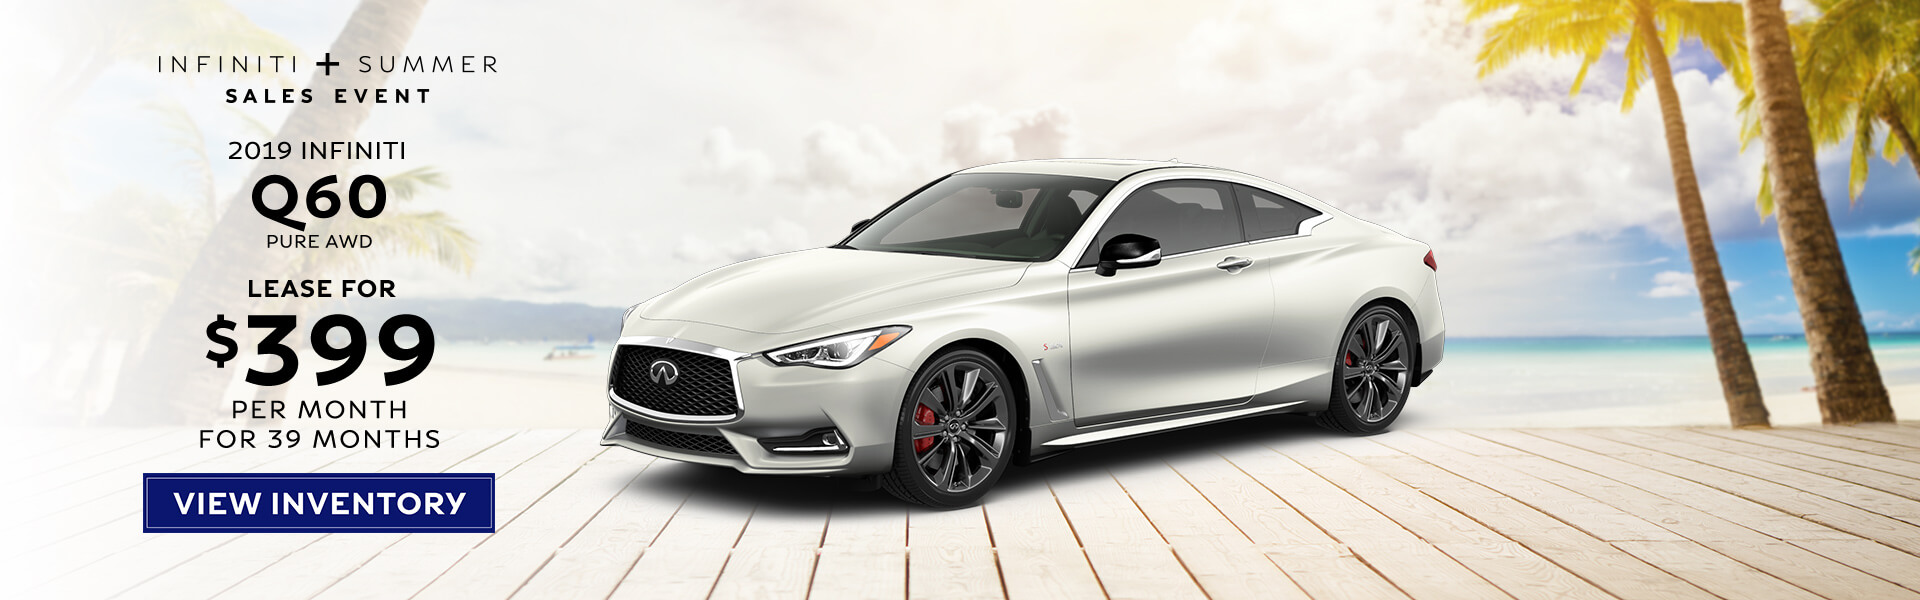 2019 Q60 - Lease for $399